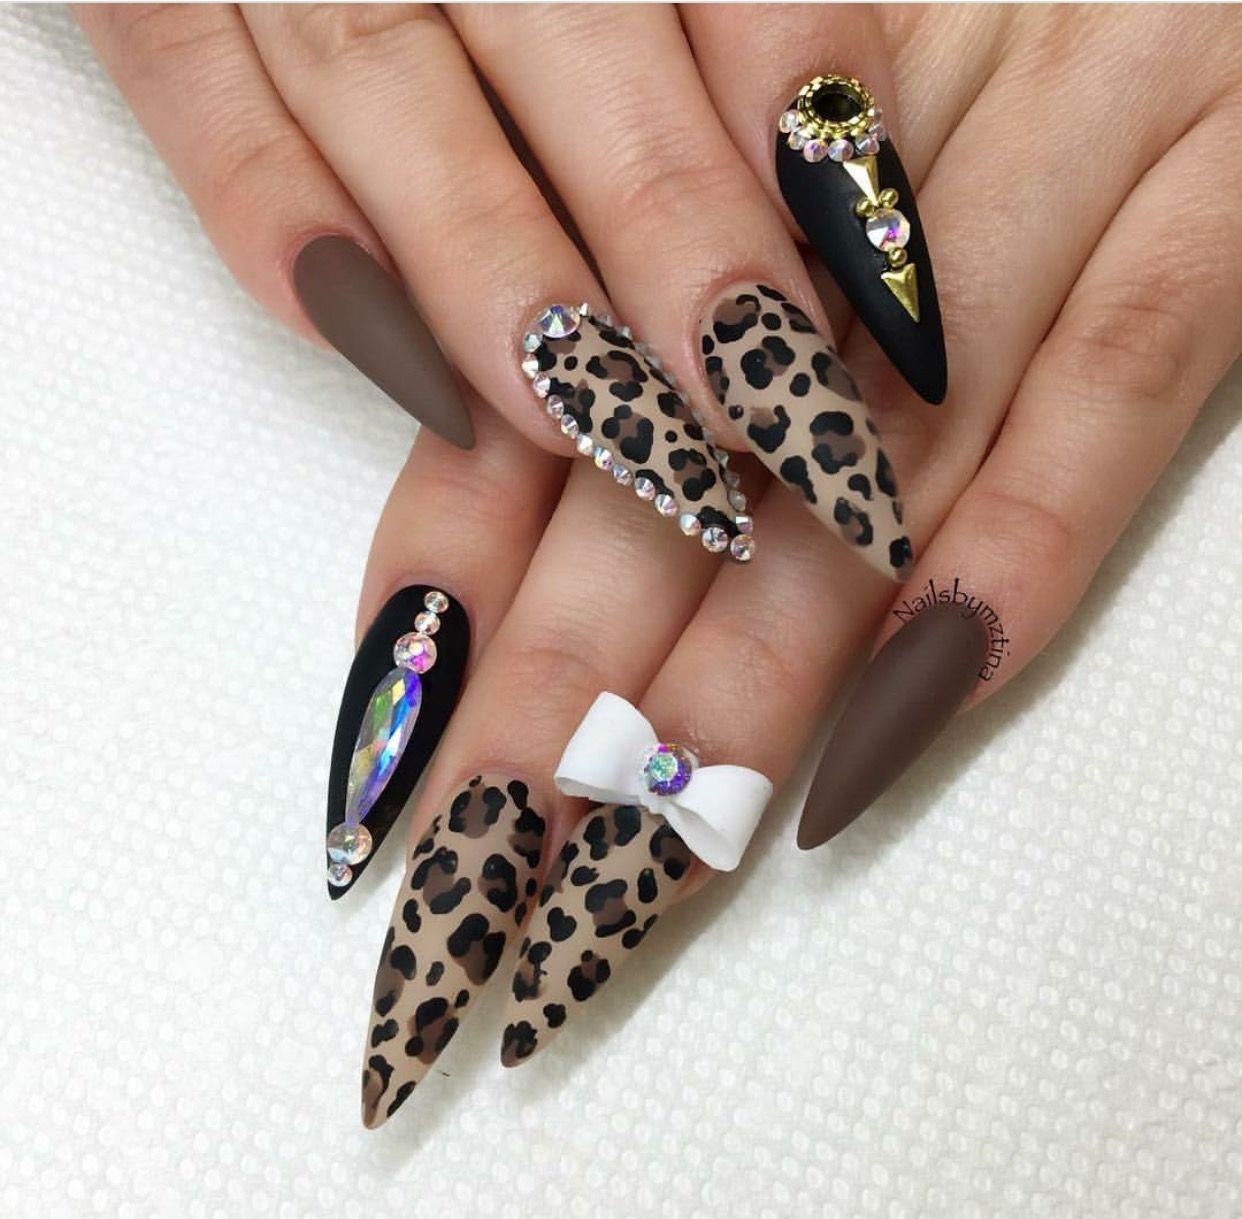 Leopard nails. With daily shares, posts, updates and ratings